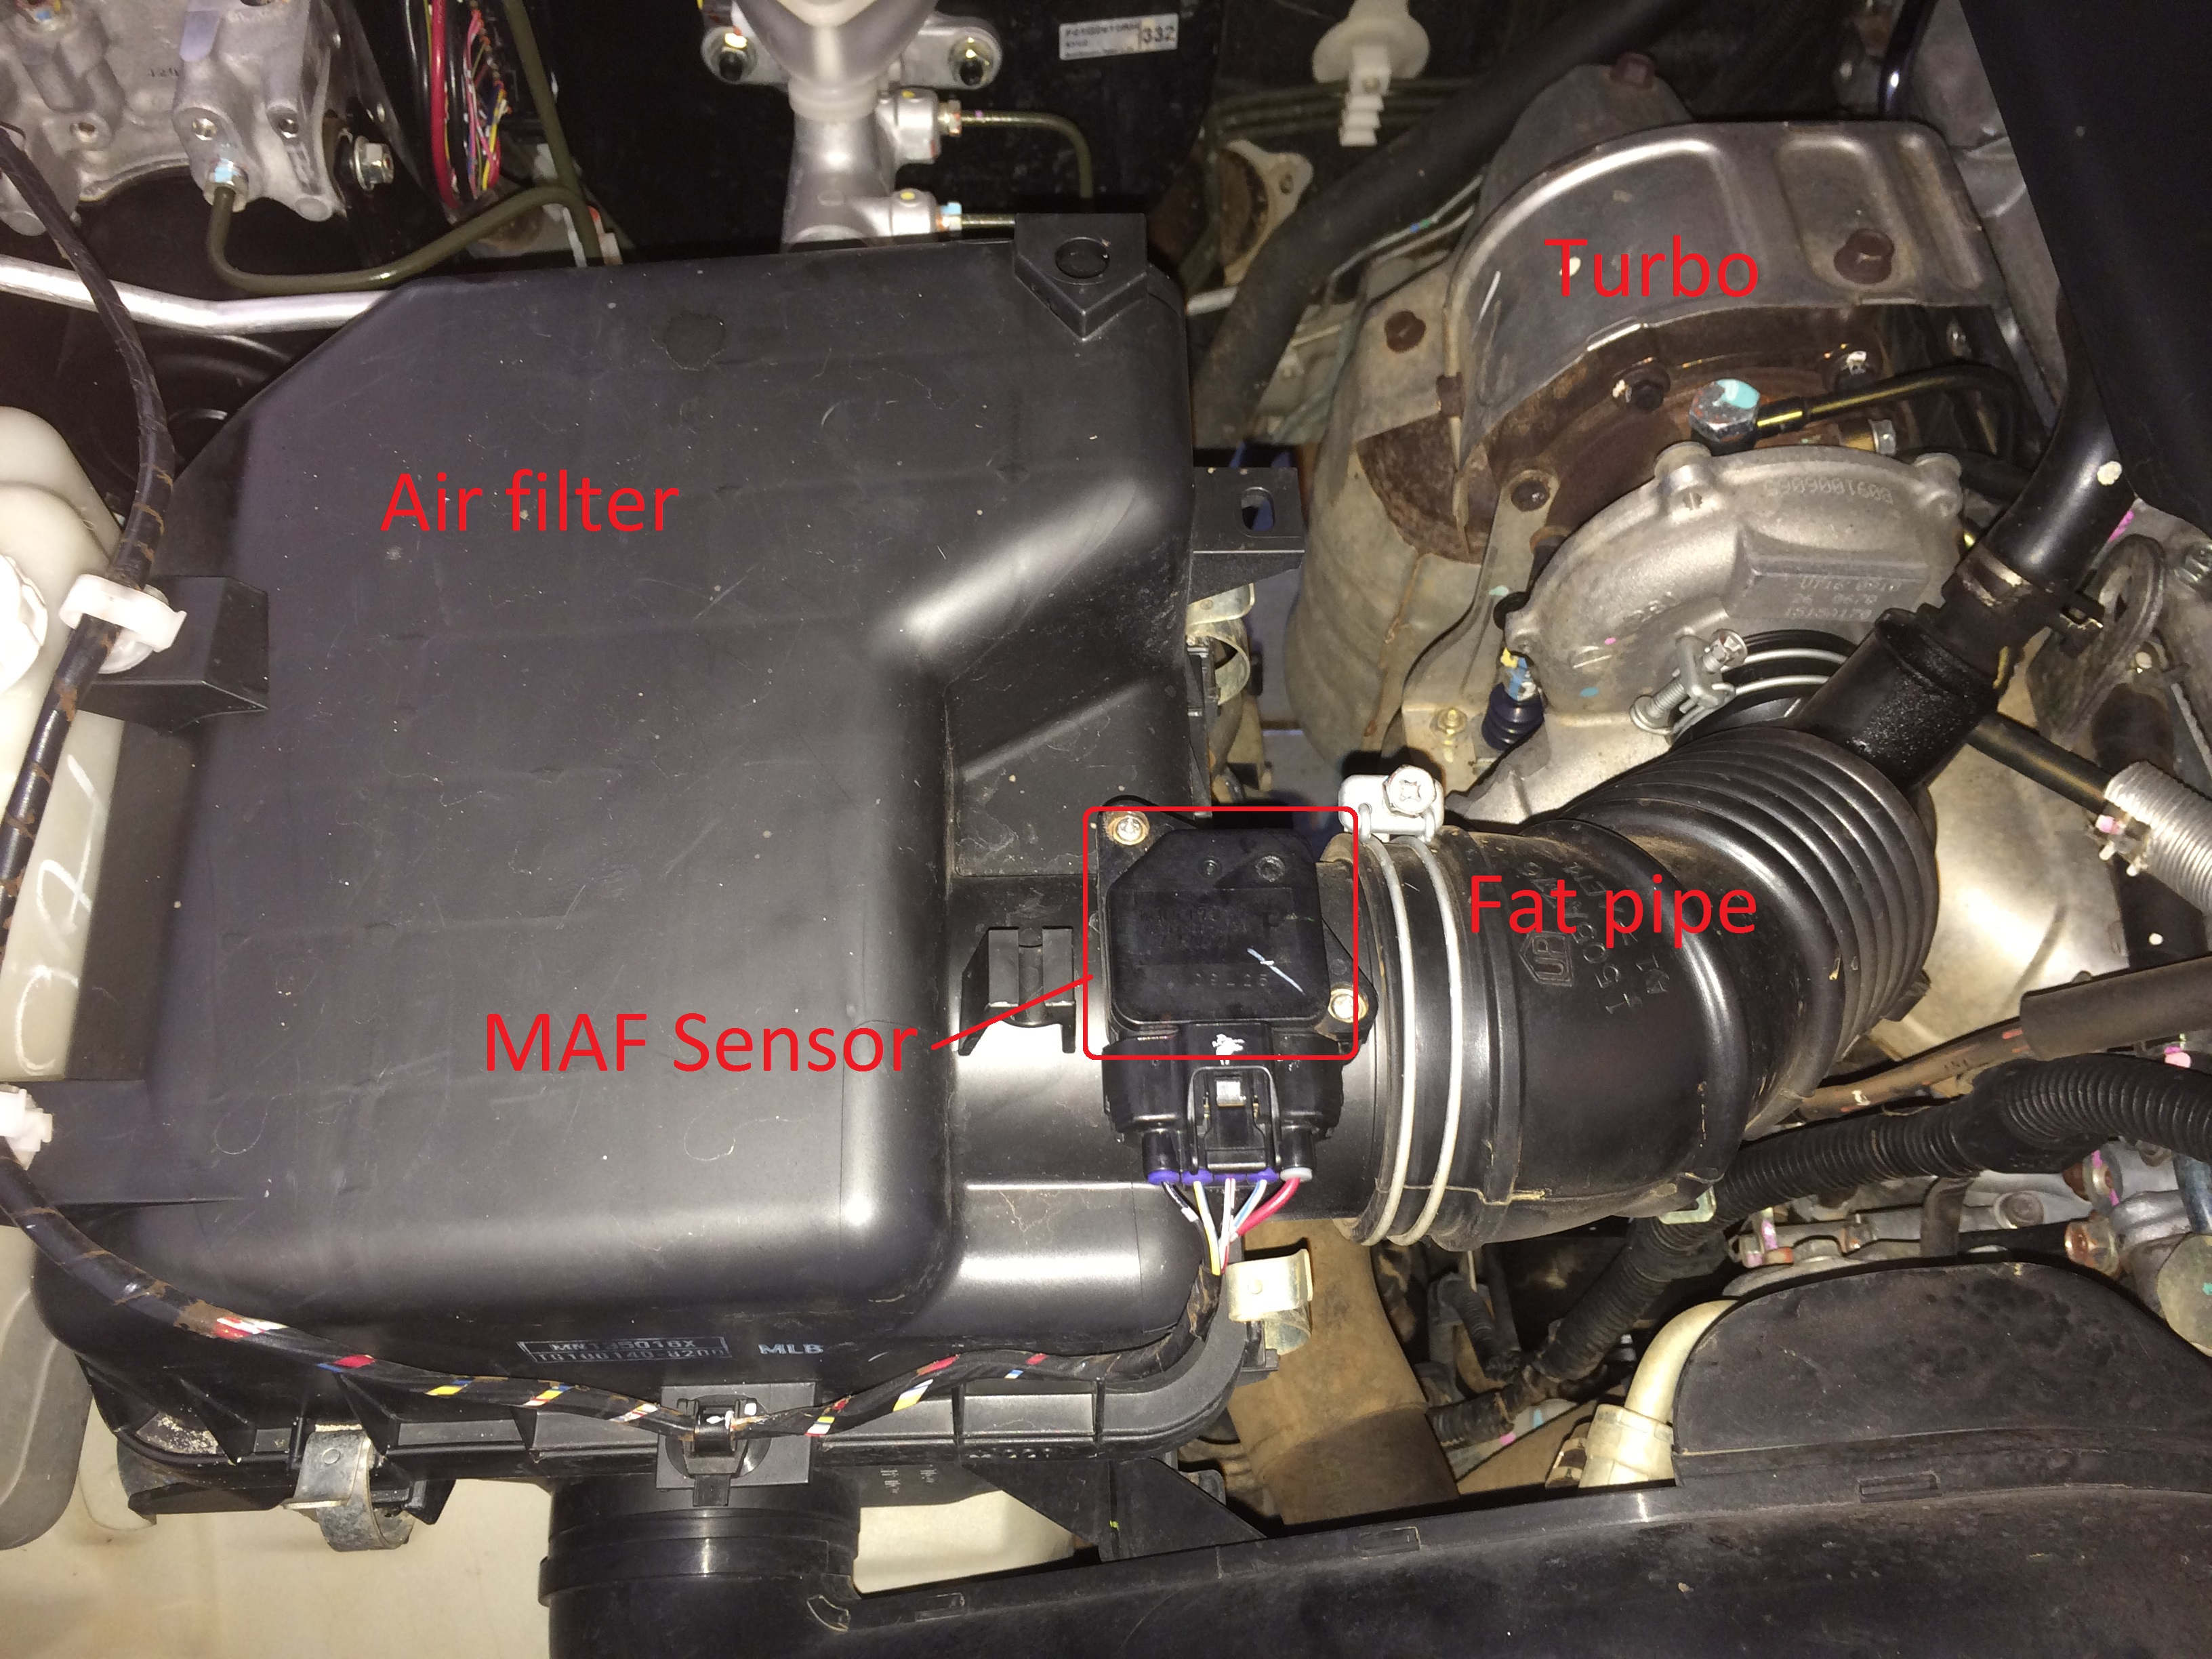 How To Clean The Maf Sensor On A 4wd Offroadaussie Com